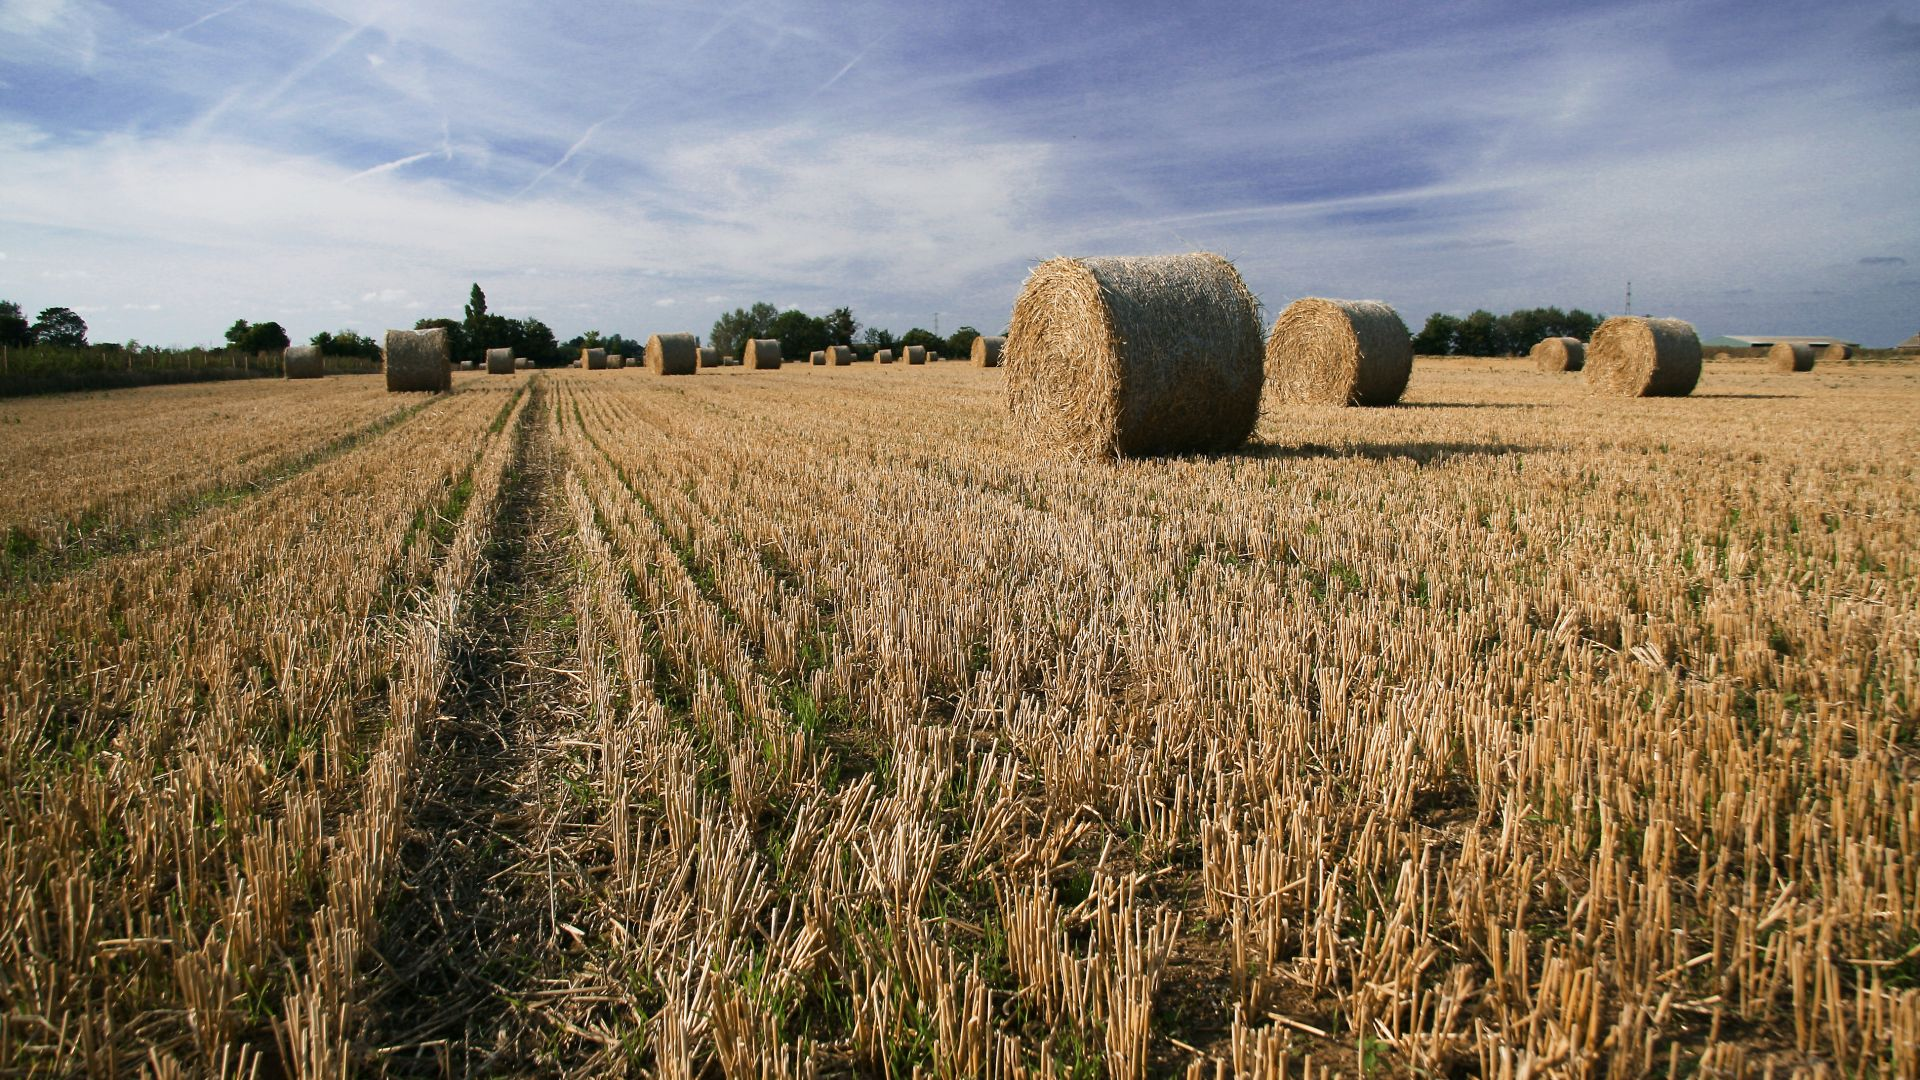 Faversham, 5k, 4k wallpaper, Kent, England, hay, field, meadows, sky (horizontal)